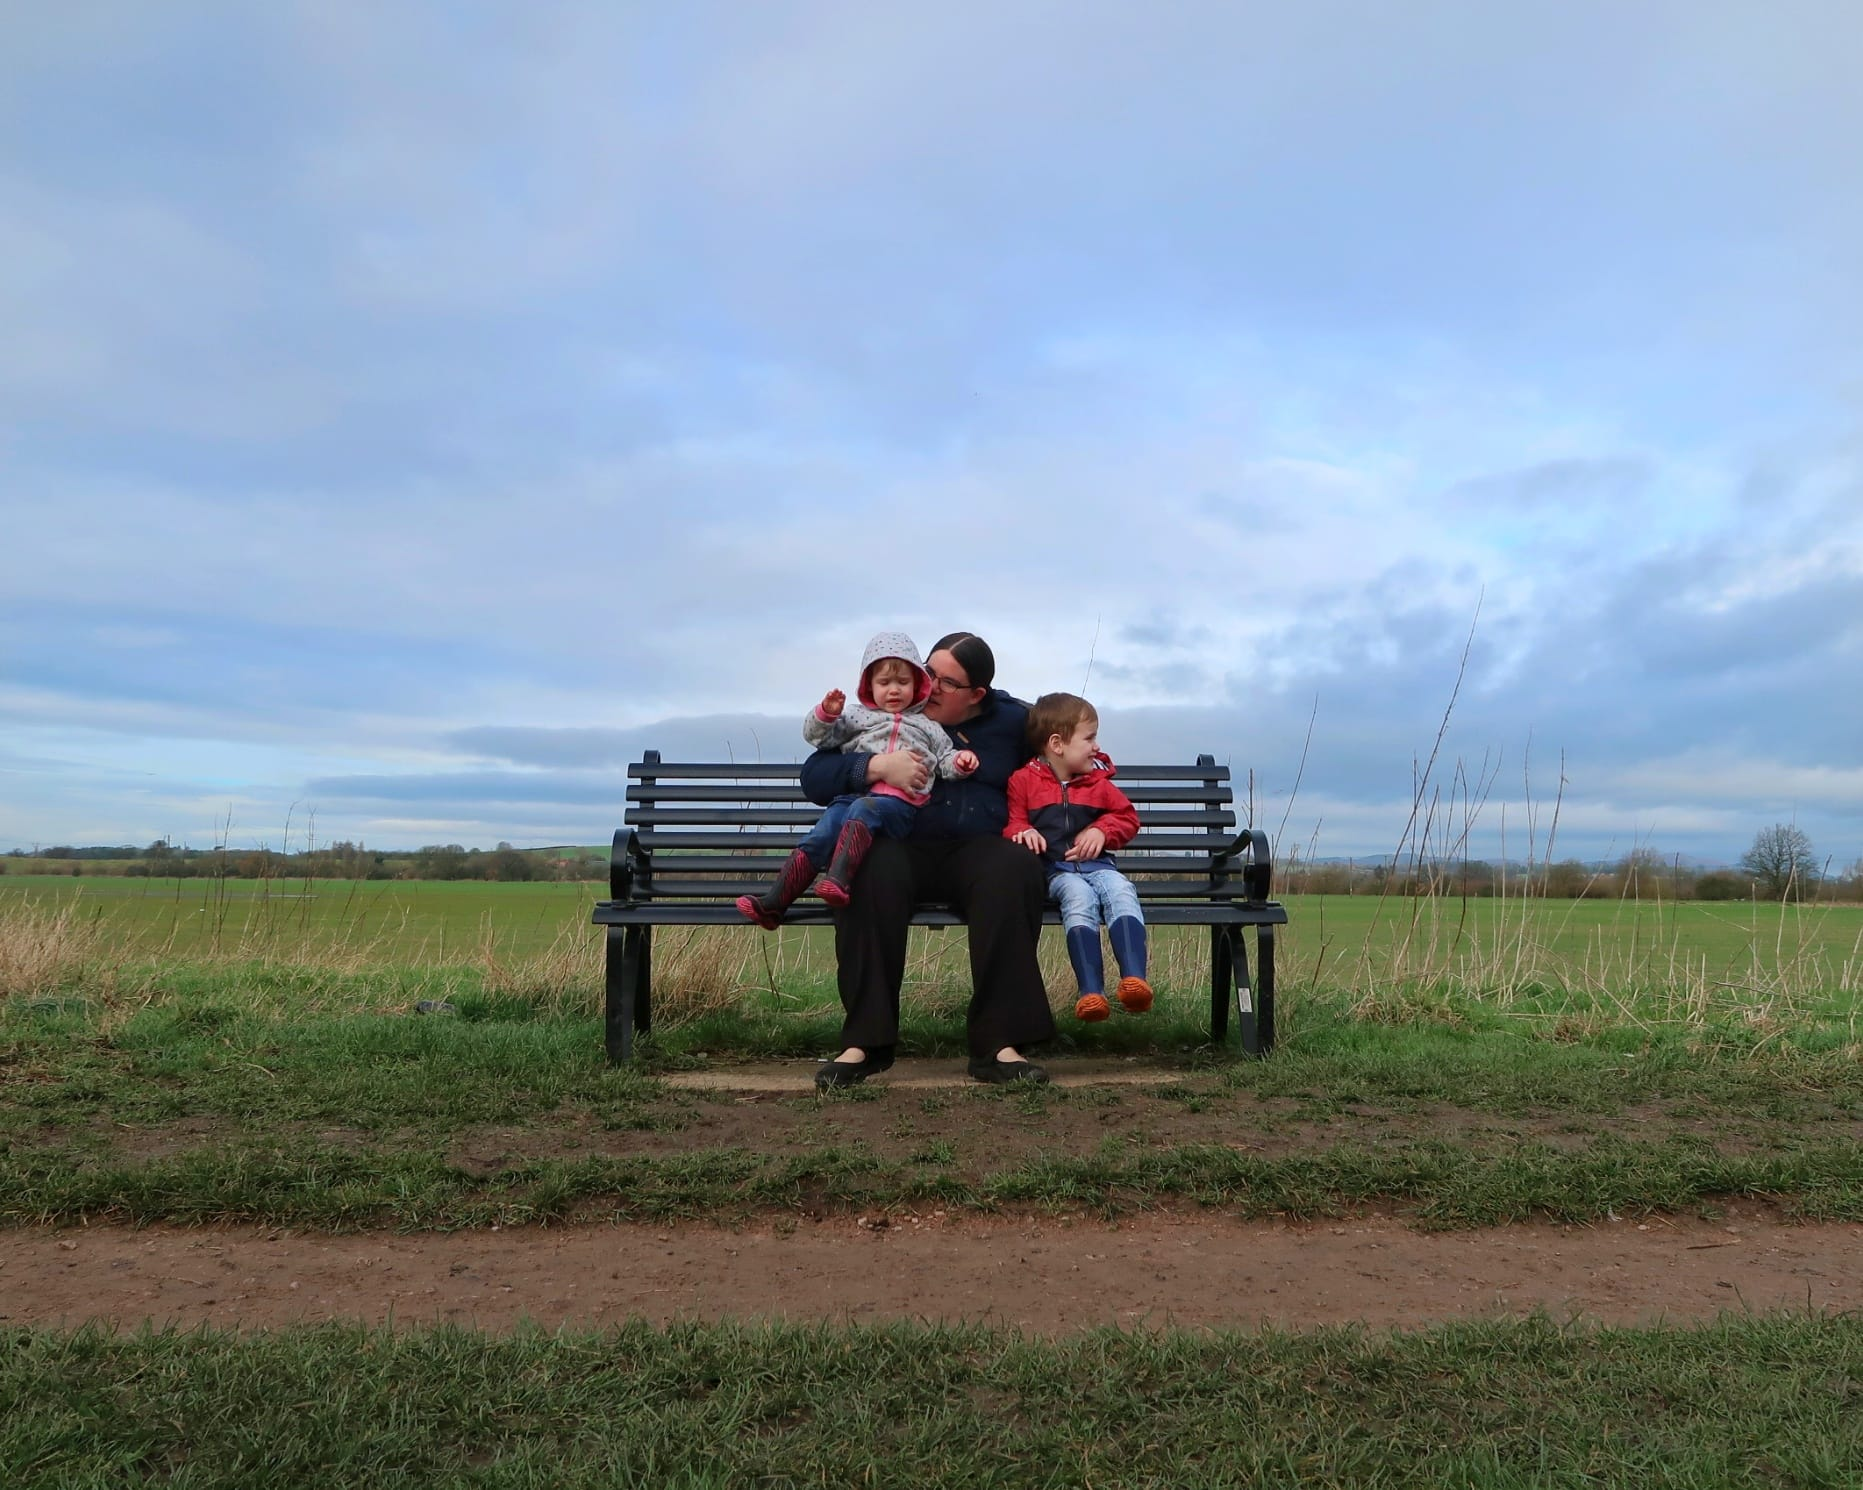 Me and the children on a bench with a dramatic sky behind